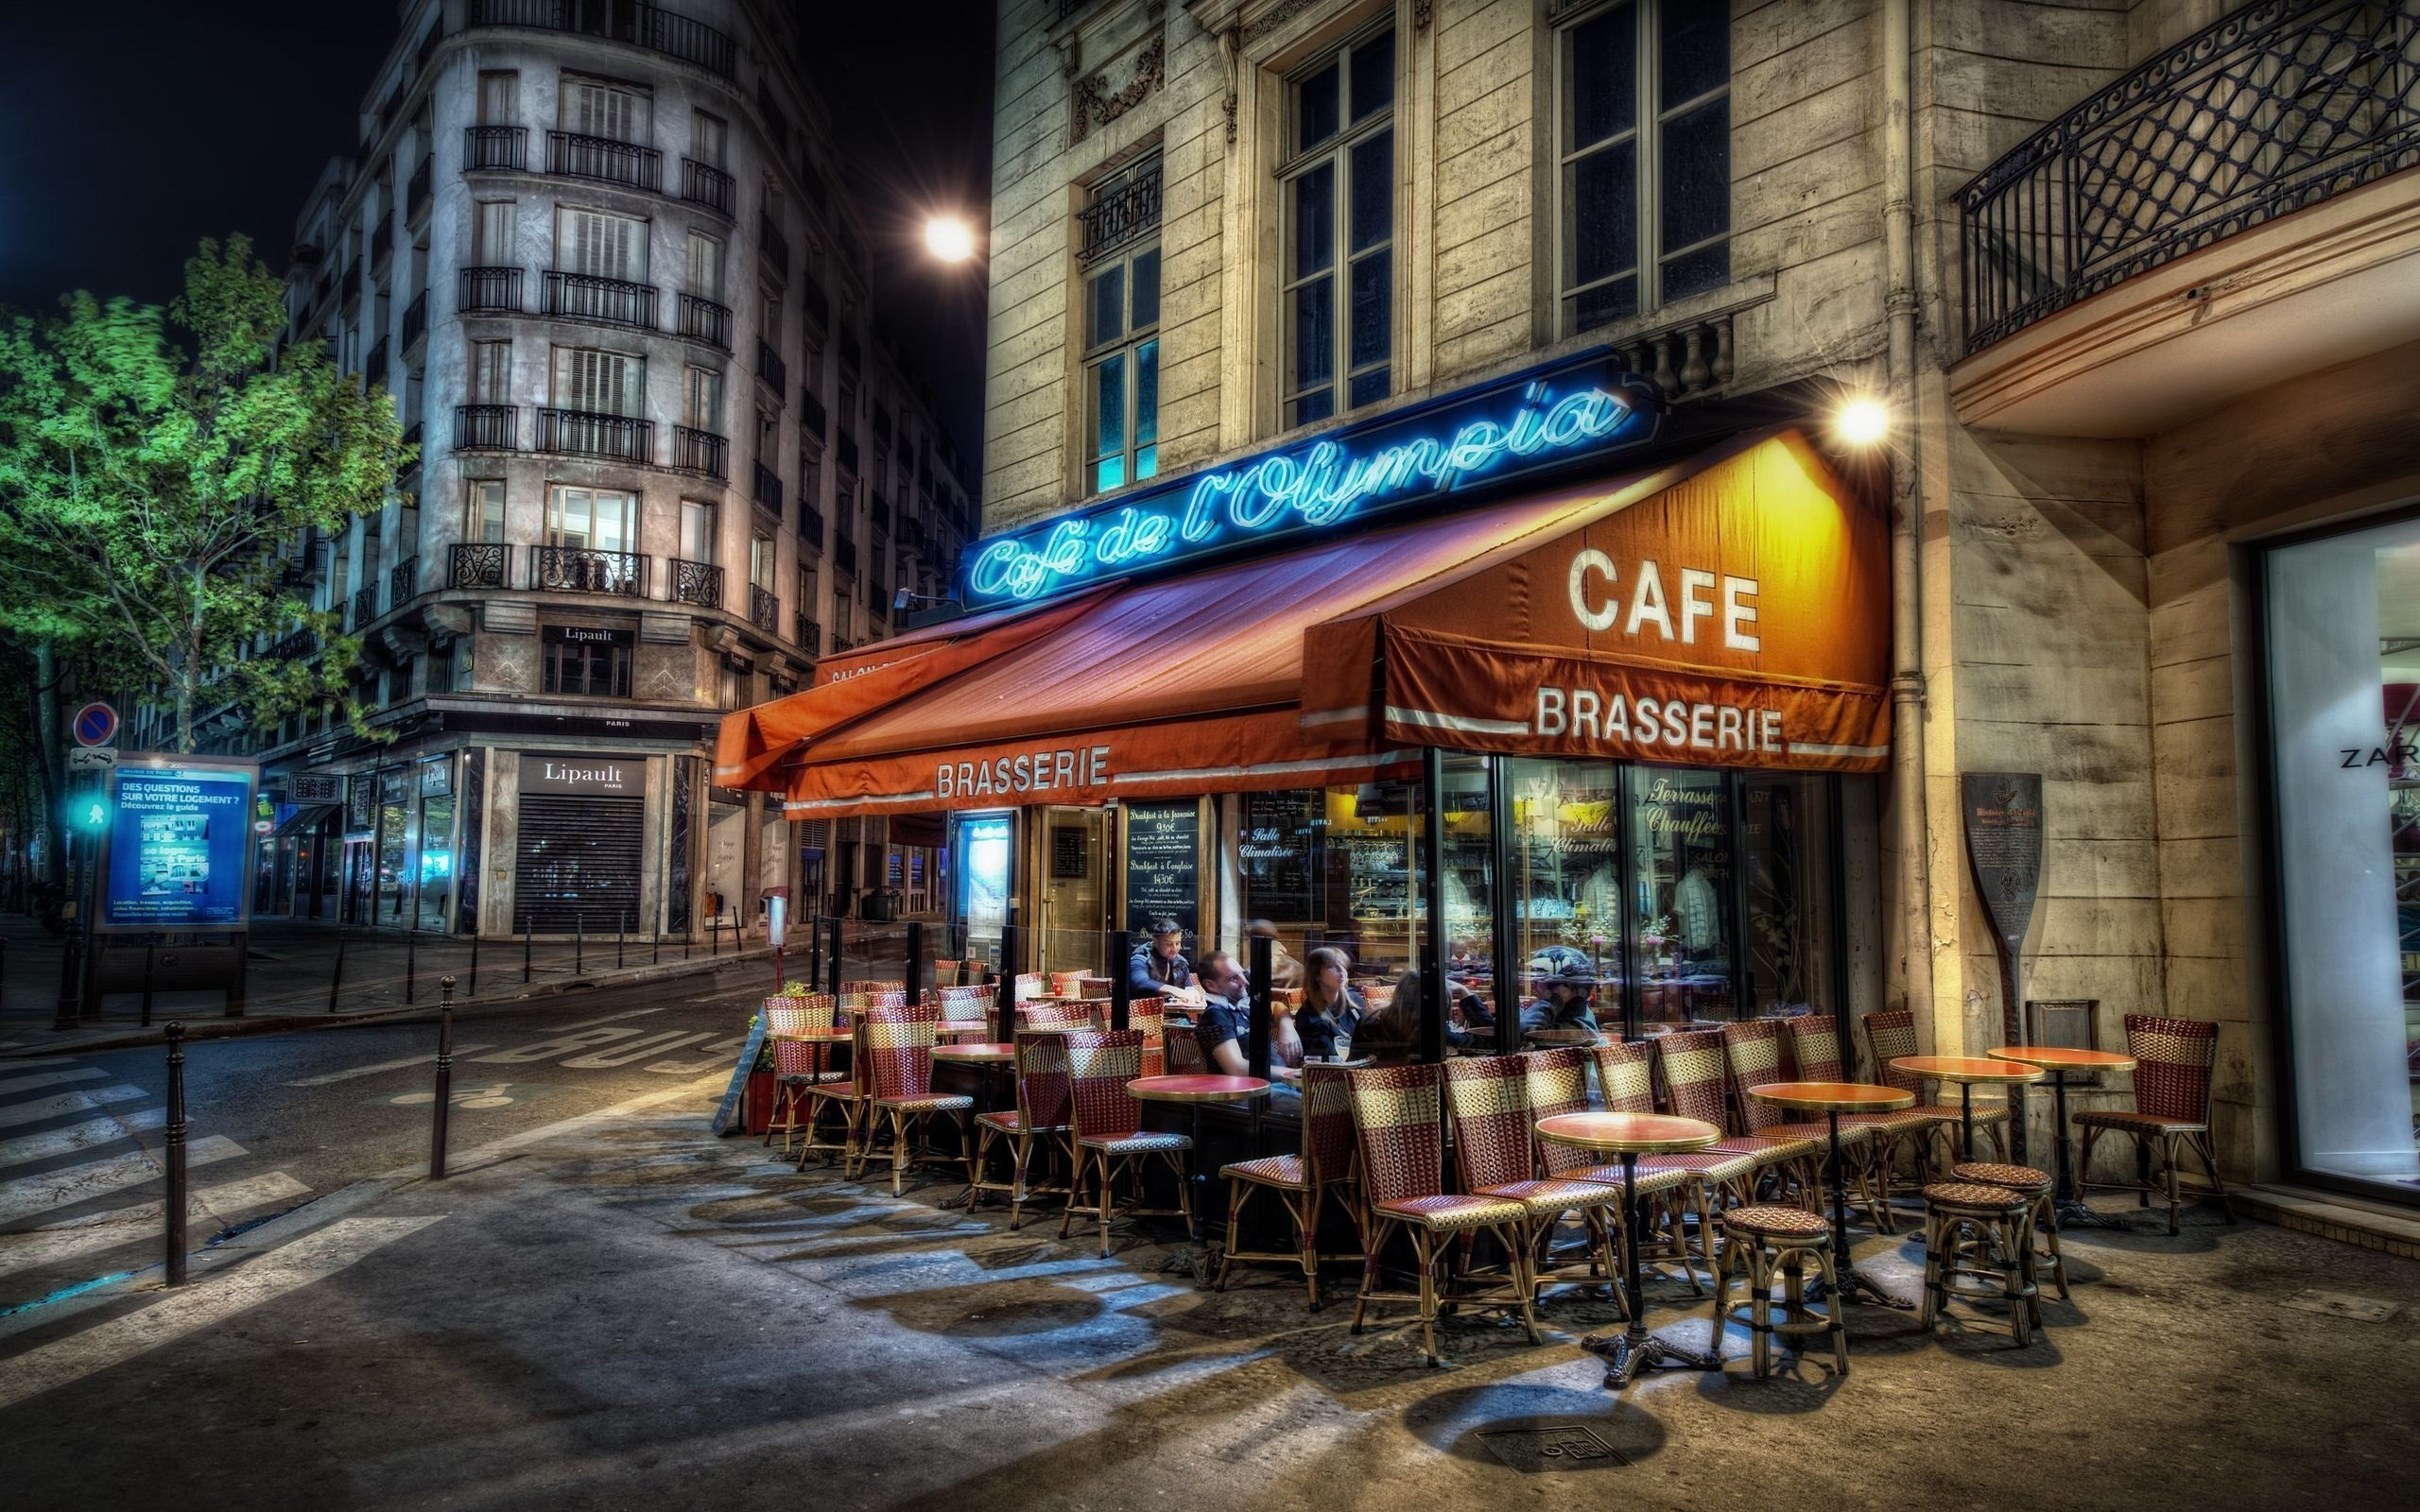 Paris streets France HDR HD Wallpaper